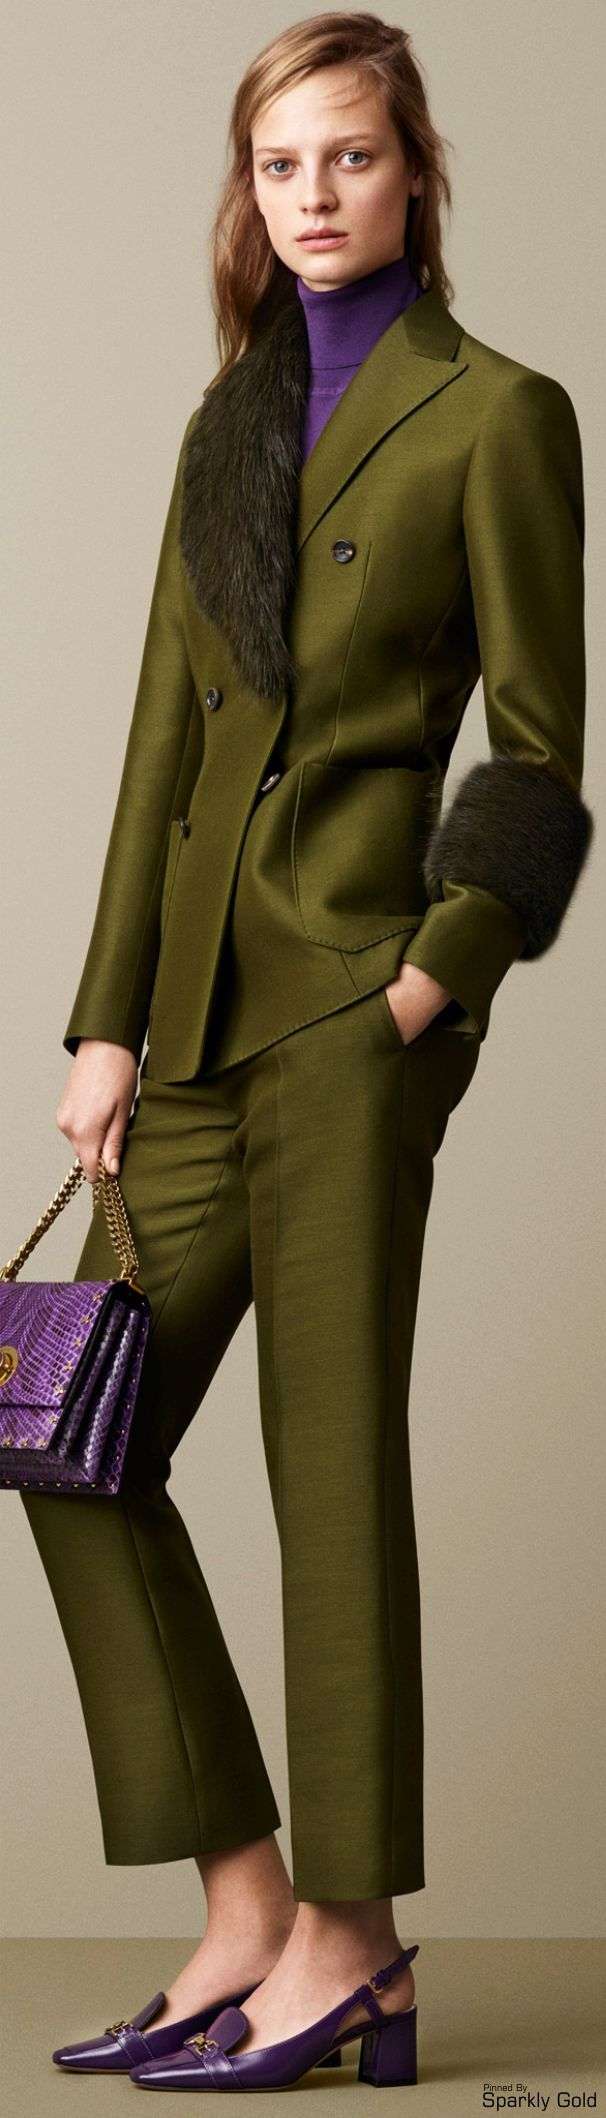 Bally Fall 2015 RTW women fashion outfit clothing style apparel @roressclothes closet ideas